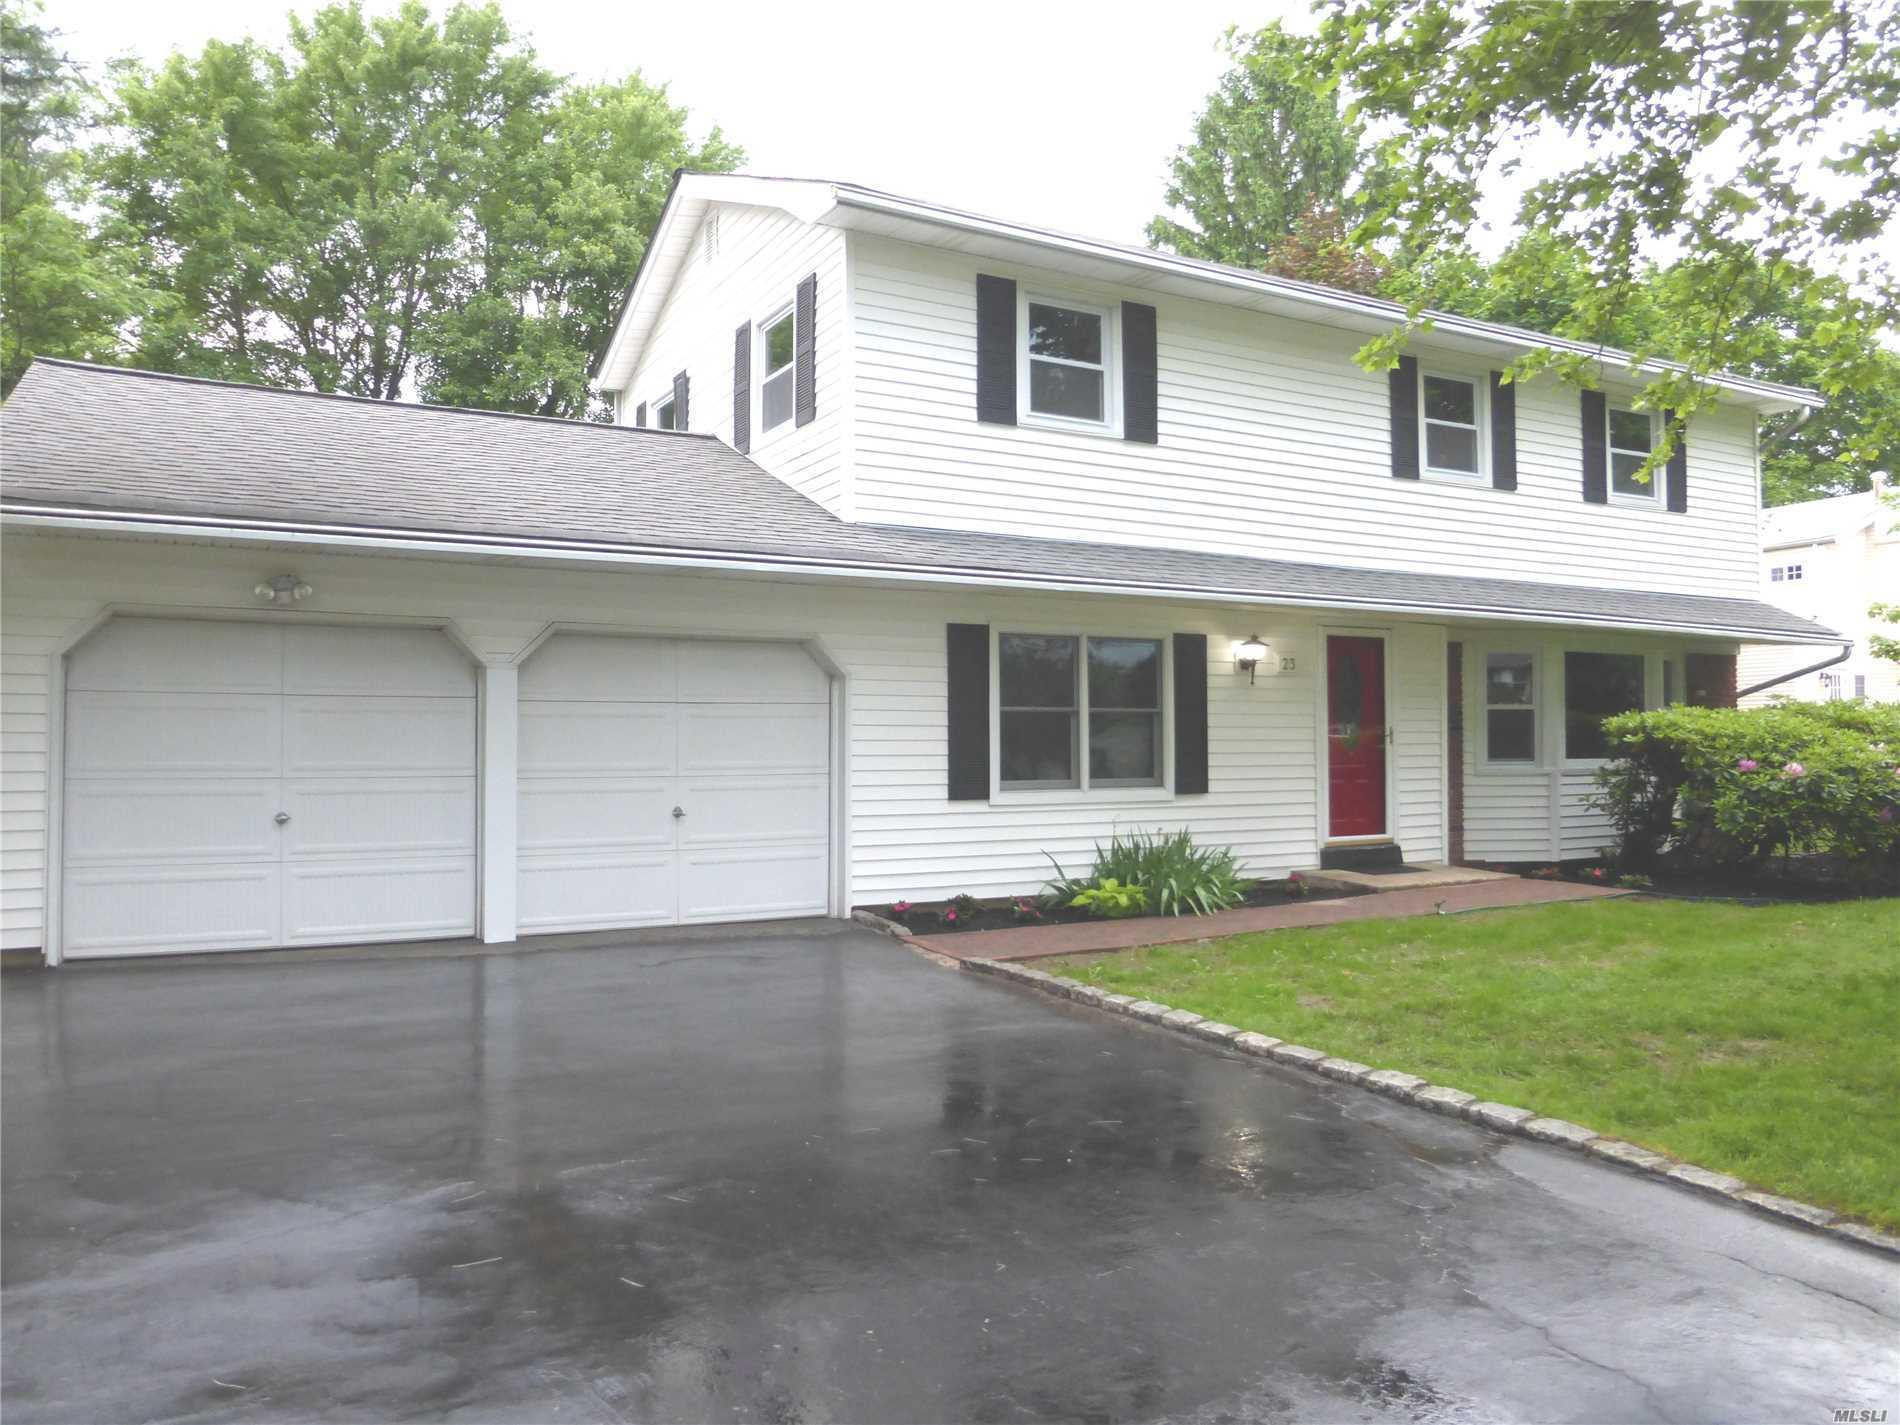 Low Tax* $9528. Completely Renovated 4 Br*3 Bth Colonial In Acclaimed Harborfield Schools*1/4 Acre. Open Flrplan. Eik W/Ss * Granite*Island. Den W/Fpl & Slider To Huge Paver Patio. New Hrdwd Flrs*Andersens*Cac*Doors*Trim*Mldng*Crown*Grand Mstr Ste W/Wic/Dressrm*Full Bth W/Dbl Sinks. Other Updates Incl Siding*Roof & Cesspool(Updated Cesspool A Major Plus Due To New Laws Mandating New $15K-$20K Septics). Full Bsmt: Recreation*Lndry*Workrm, Updated Gas Htr, Sep Hw & 200Amp Electr.